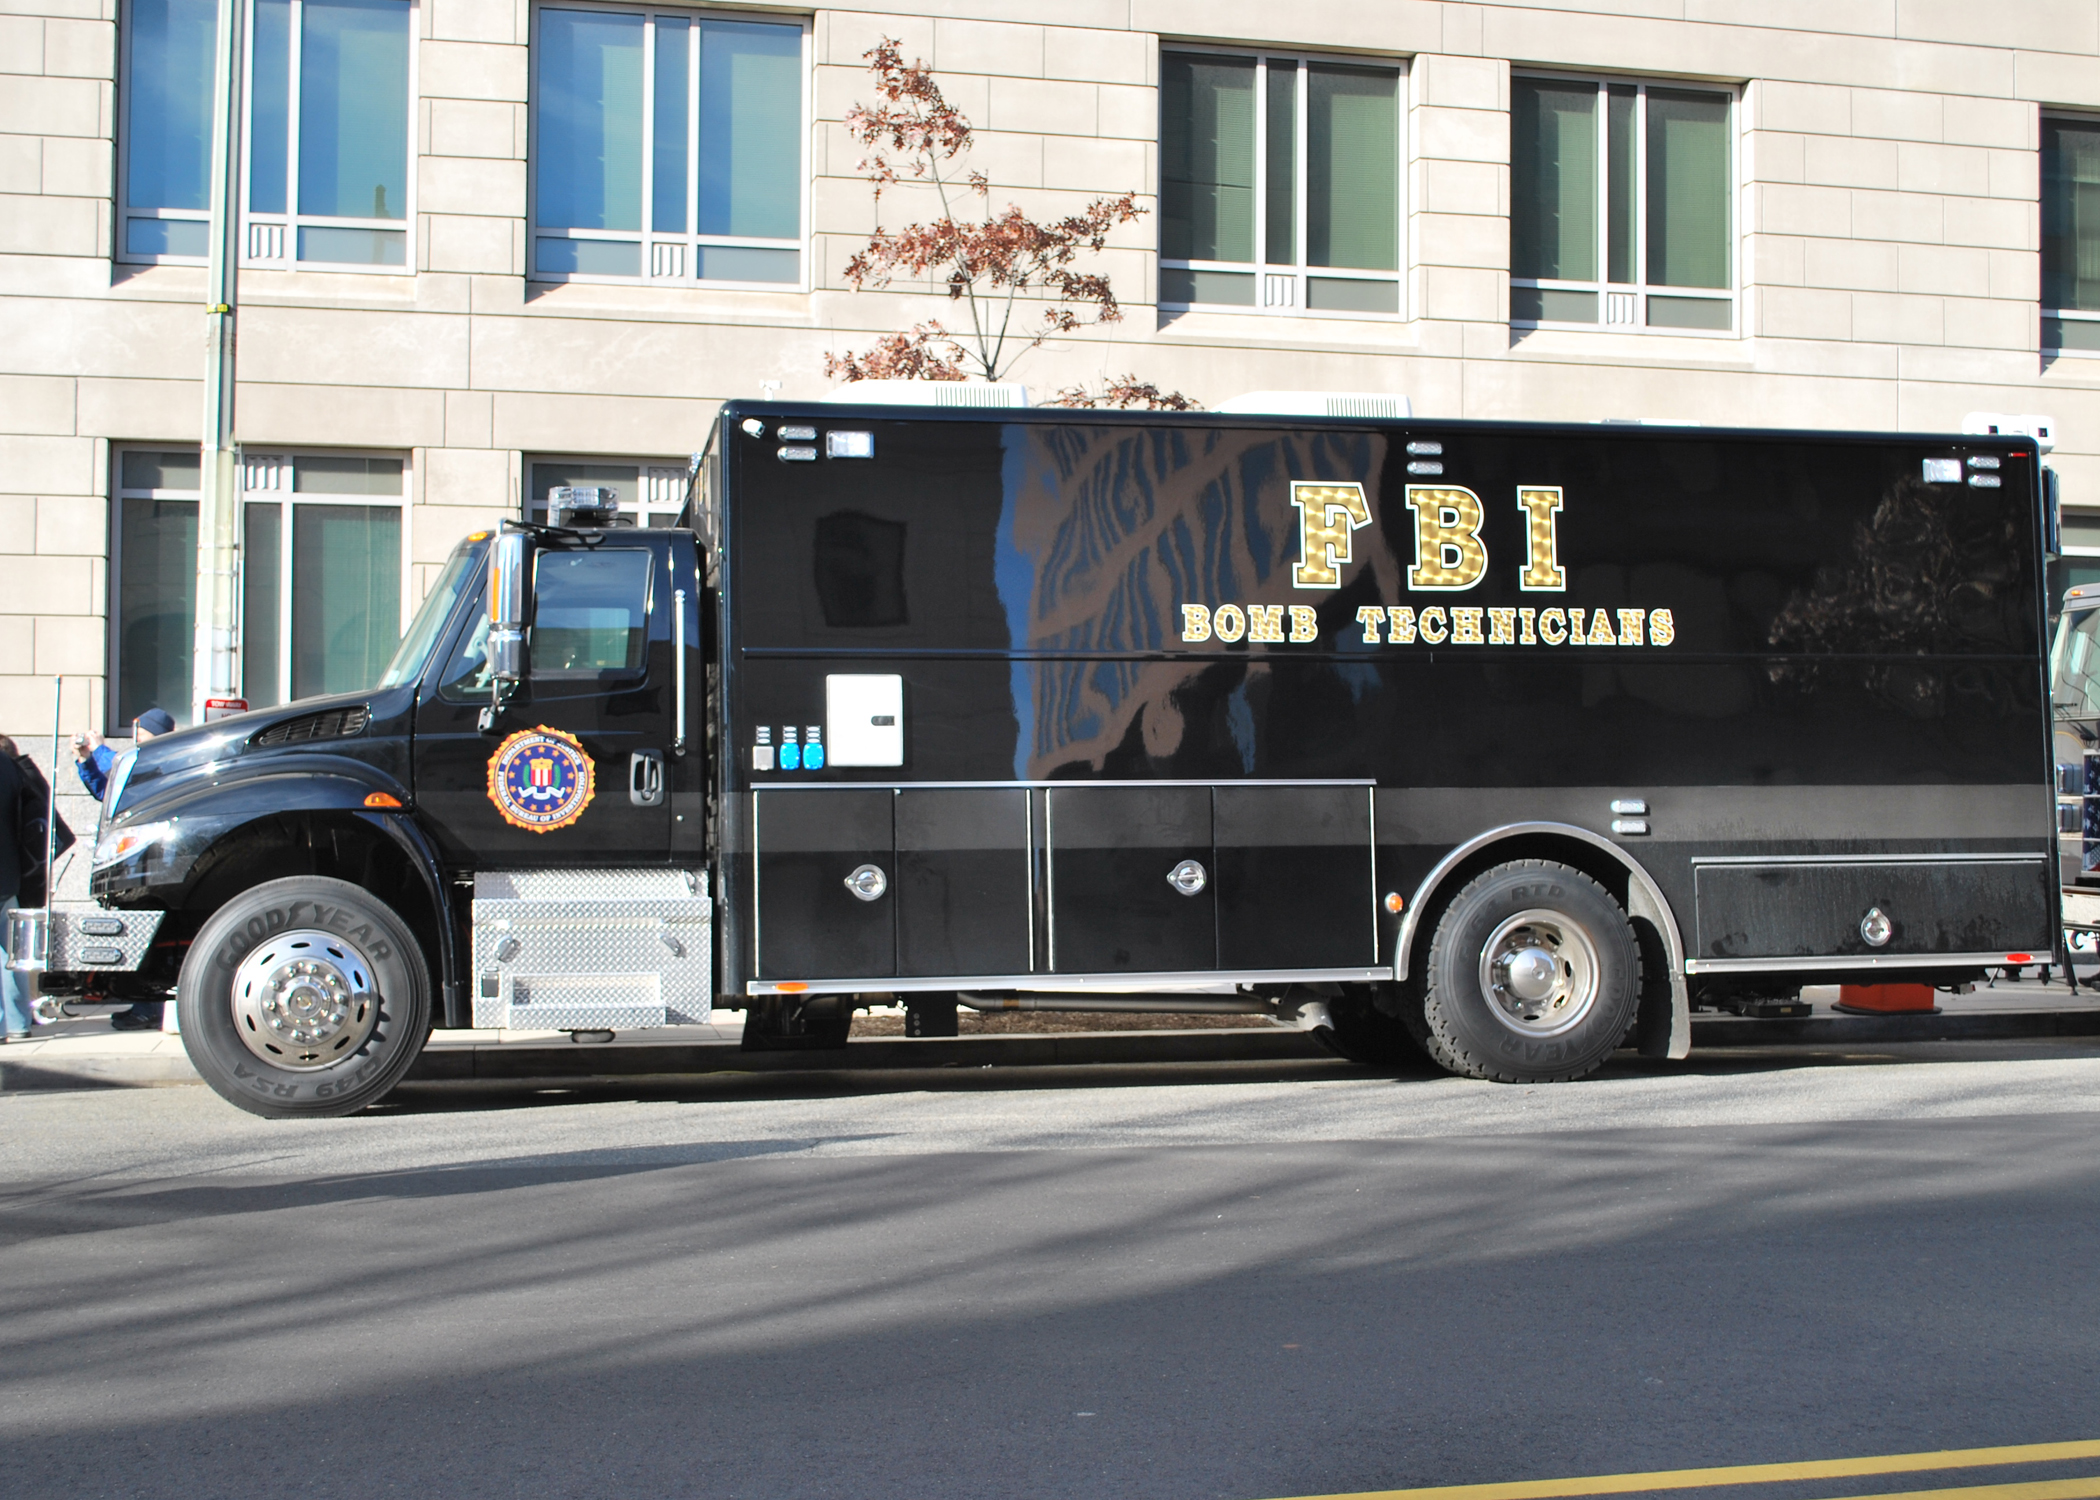 FBI Bomb Technician Vehicle (courtesy of FBI)